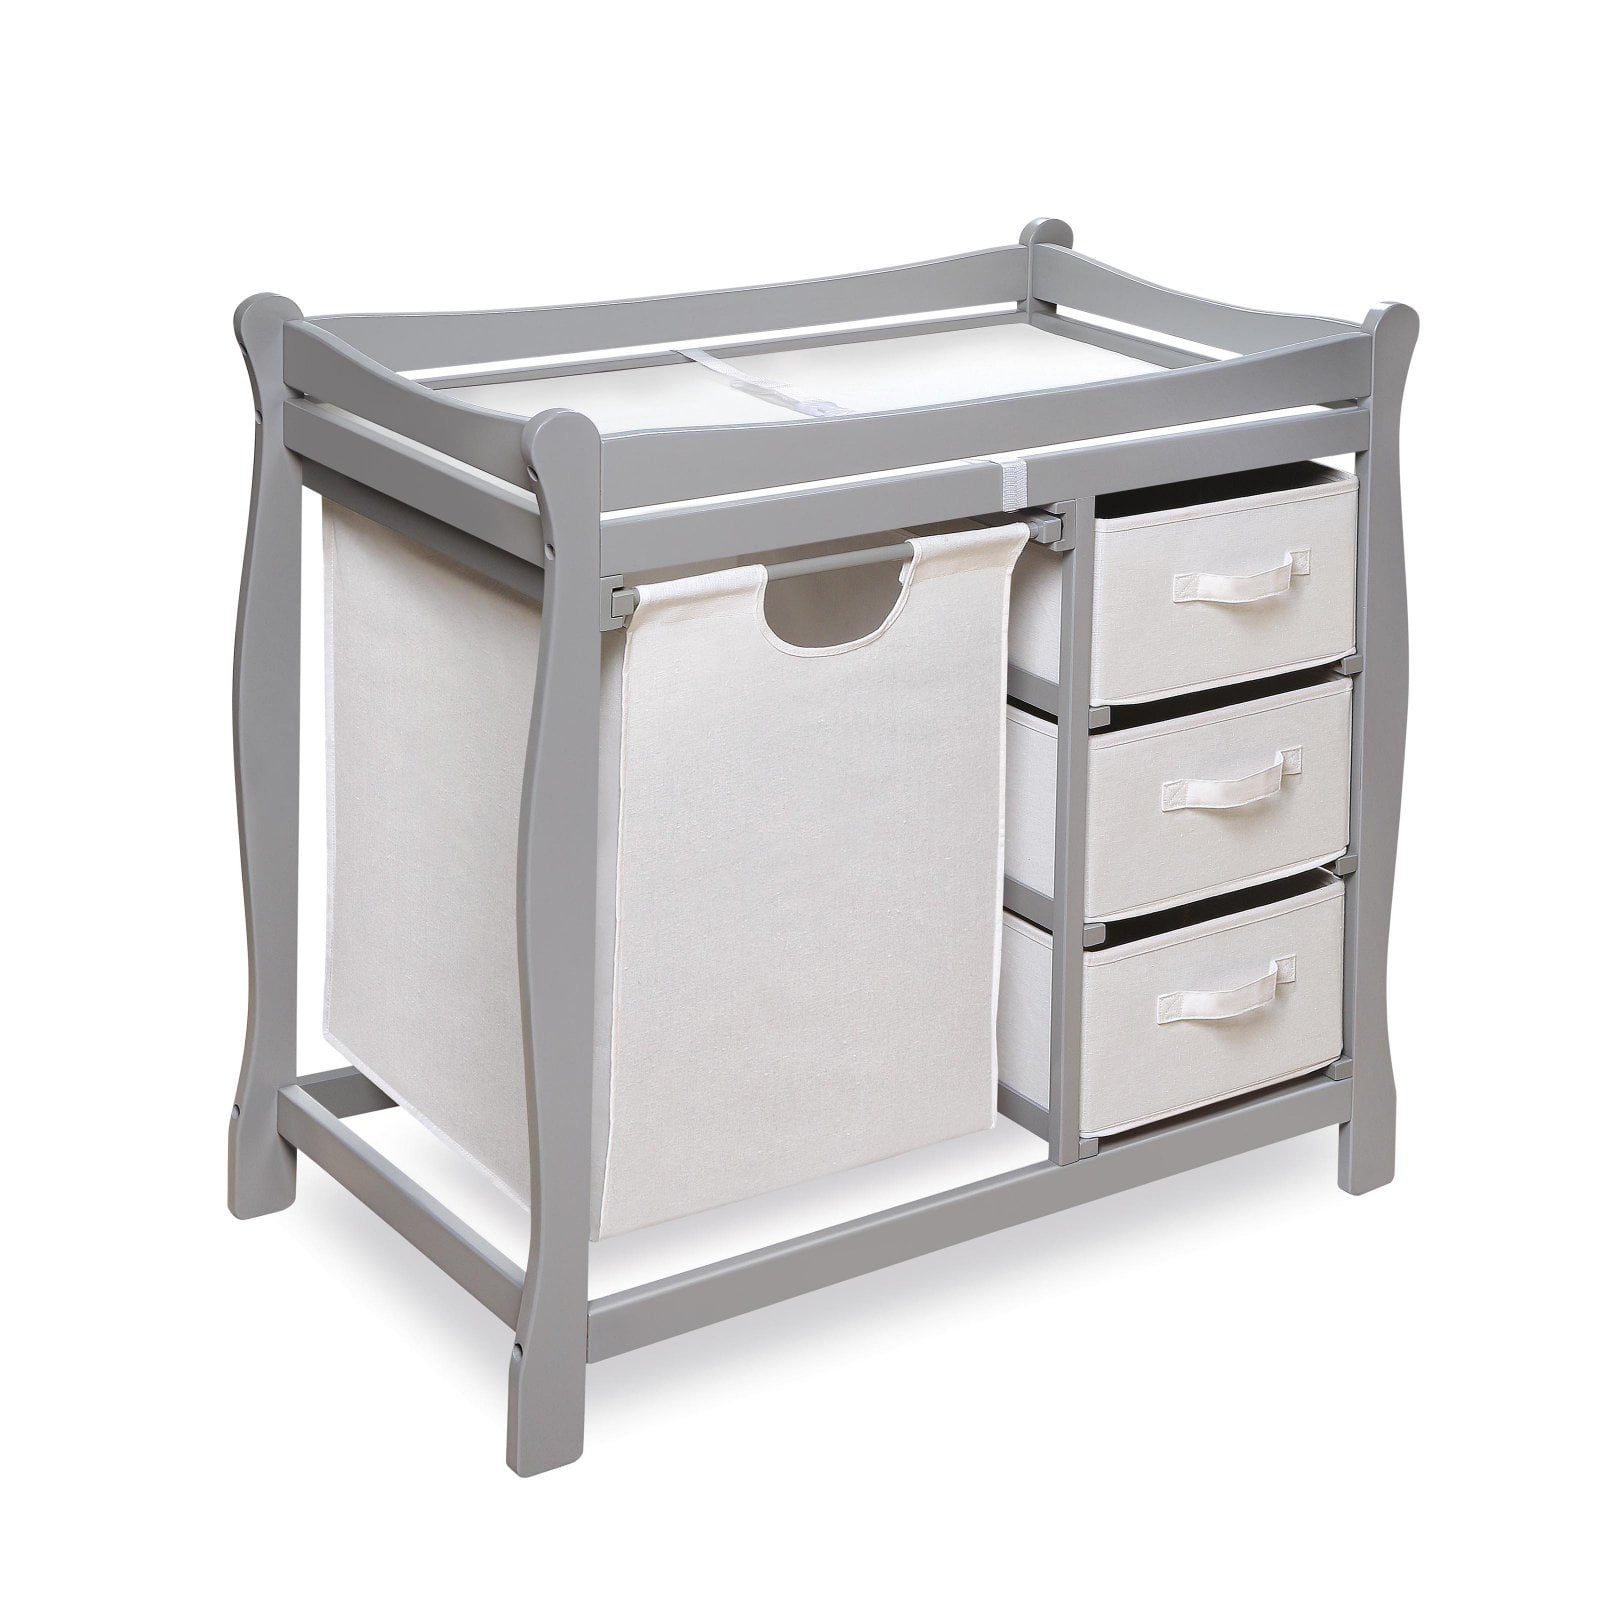 Badger Basket Sleigh Style Changing Table with Hamper and Baskets, Gray by Badger Basket